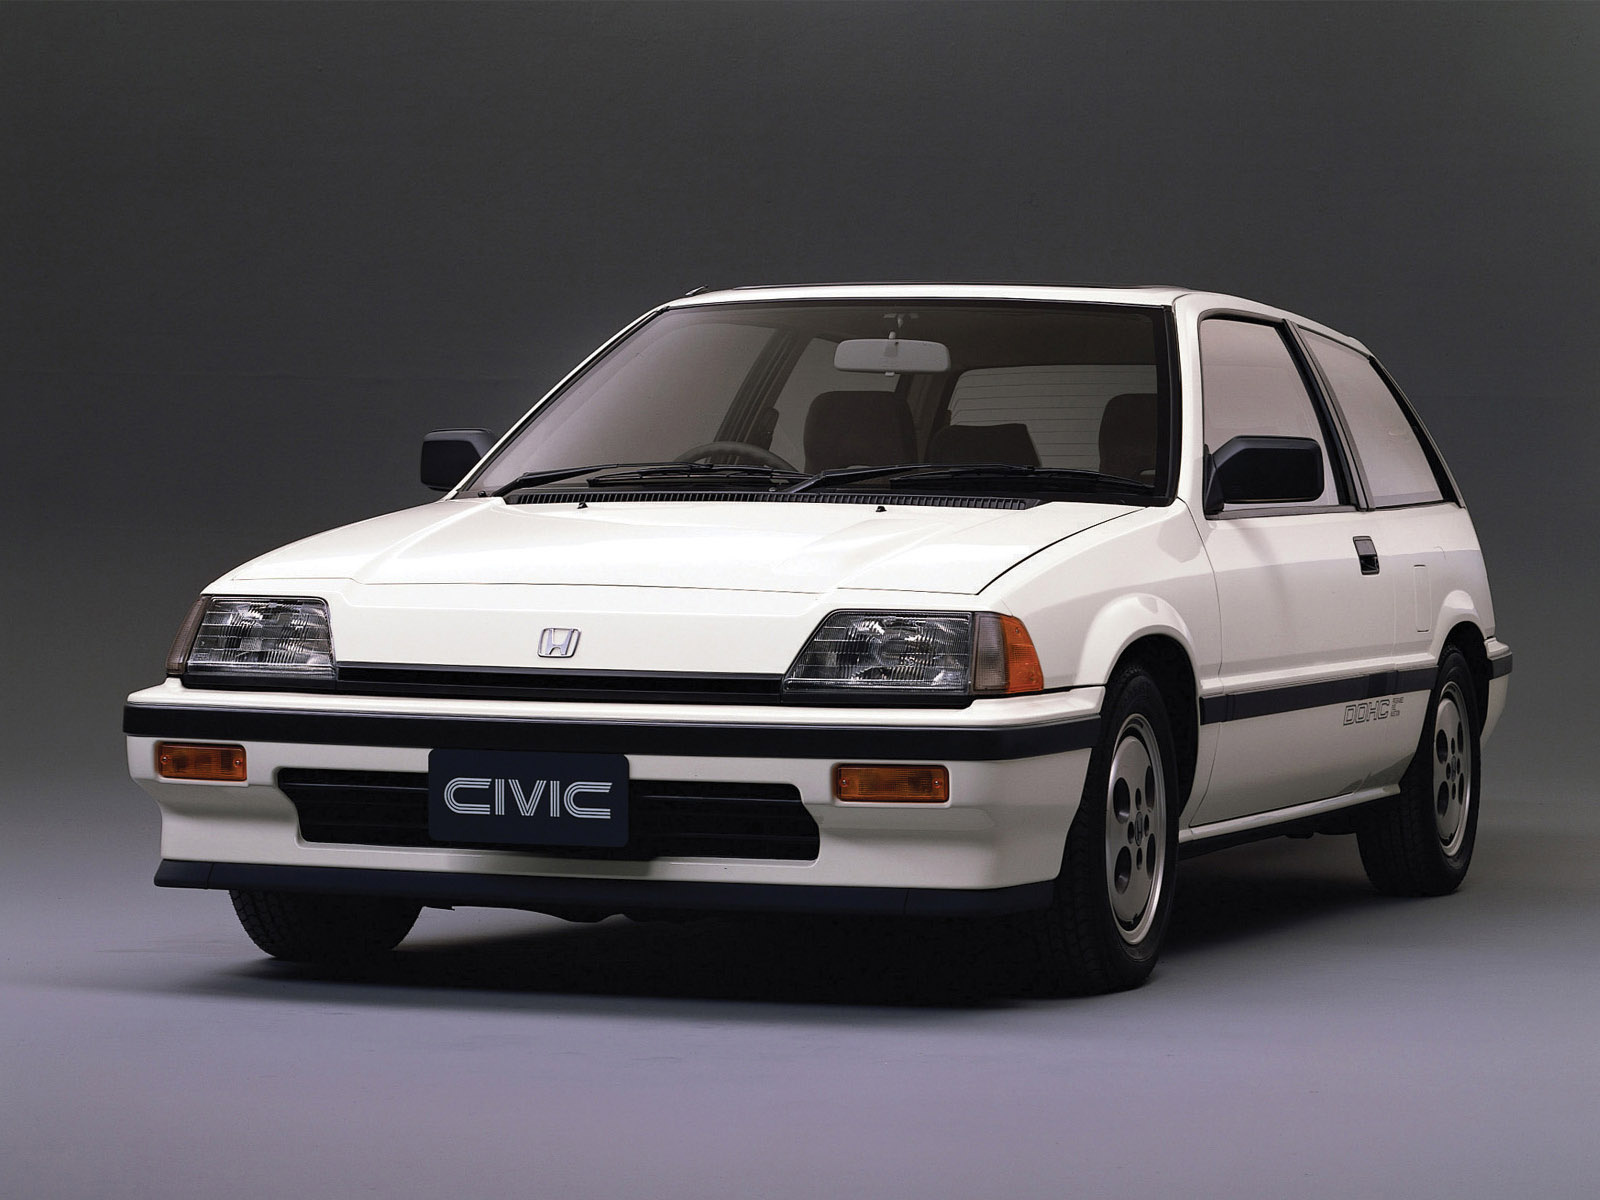 Honda Crv Used >> 1985 Honda Civic - Overview - CarGurus